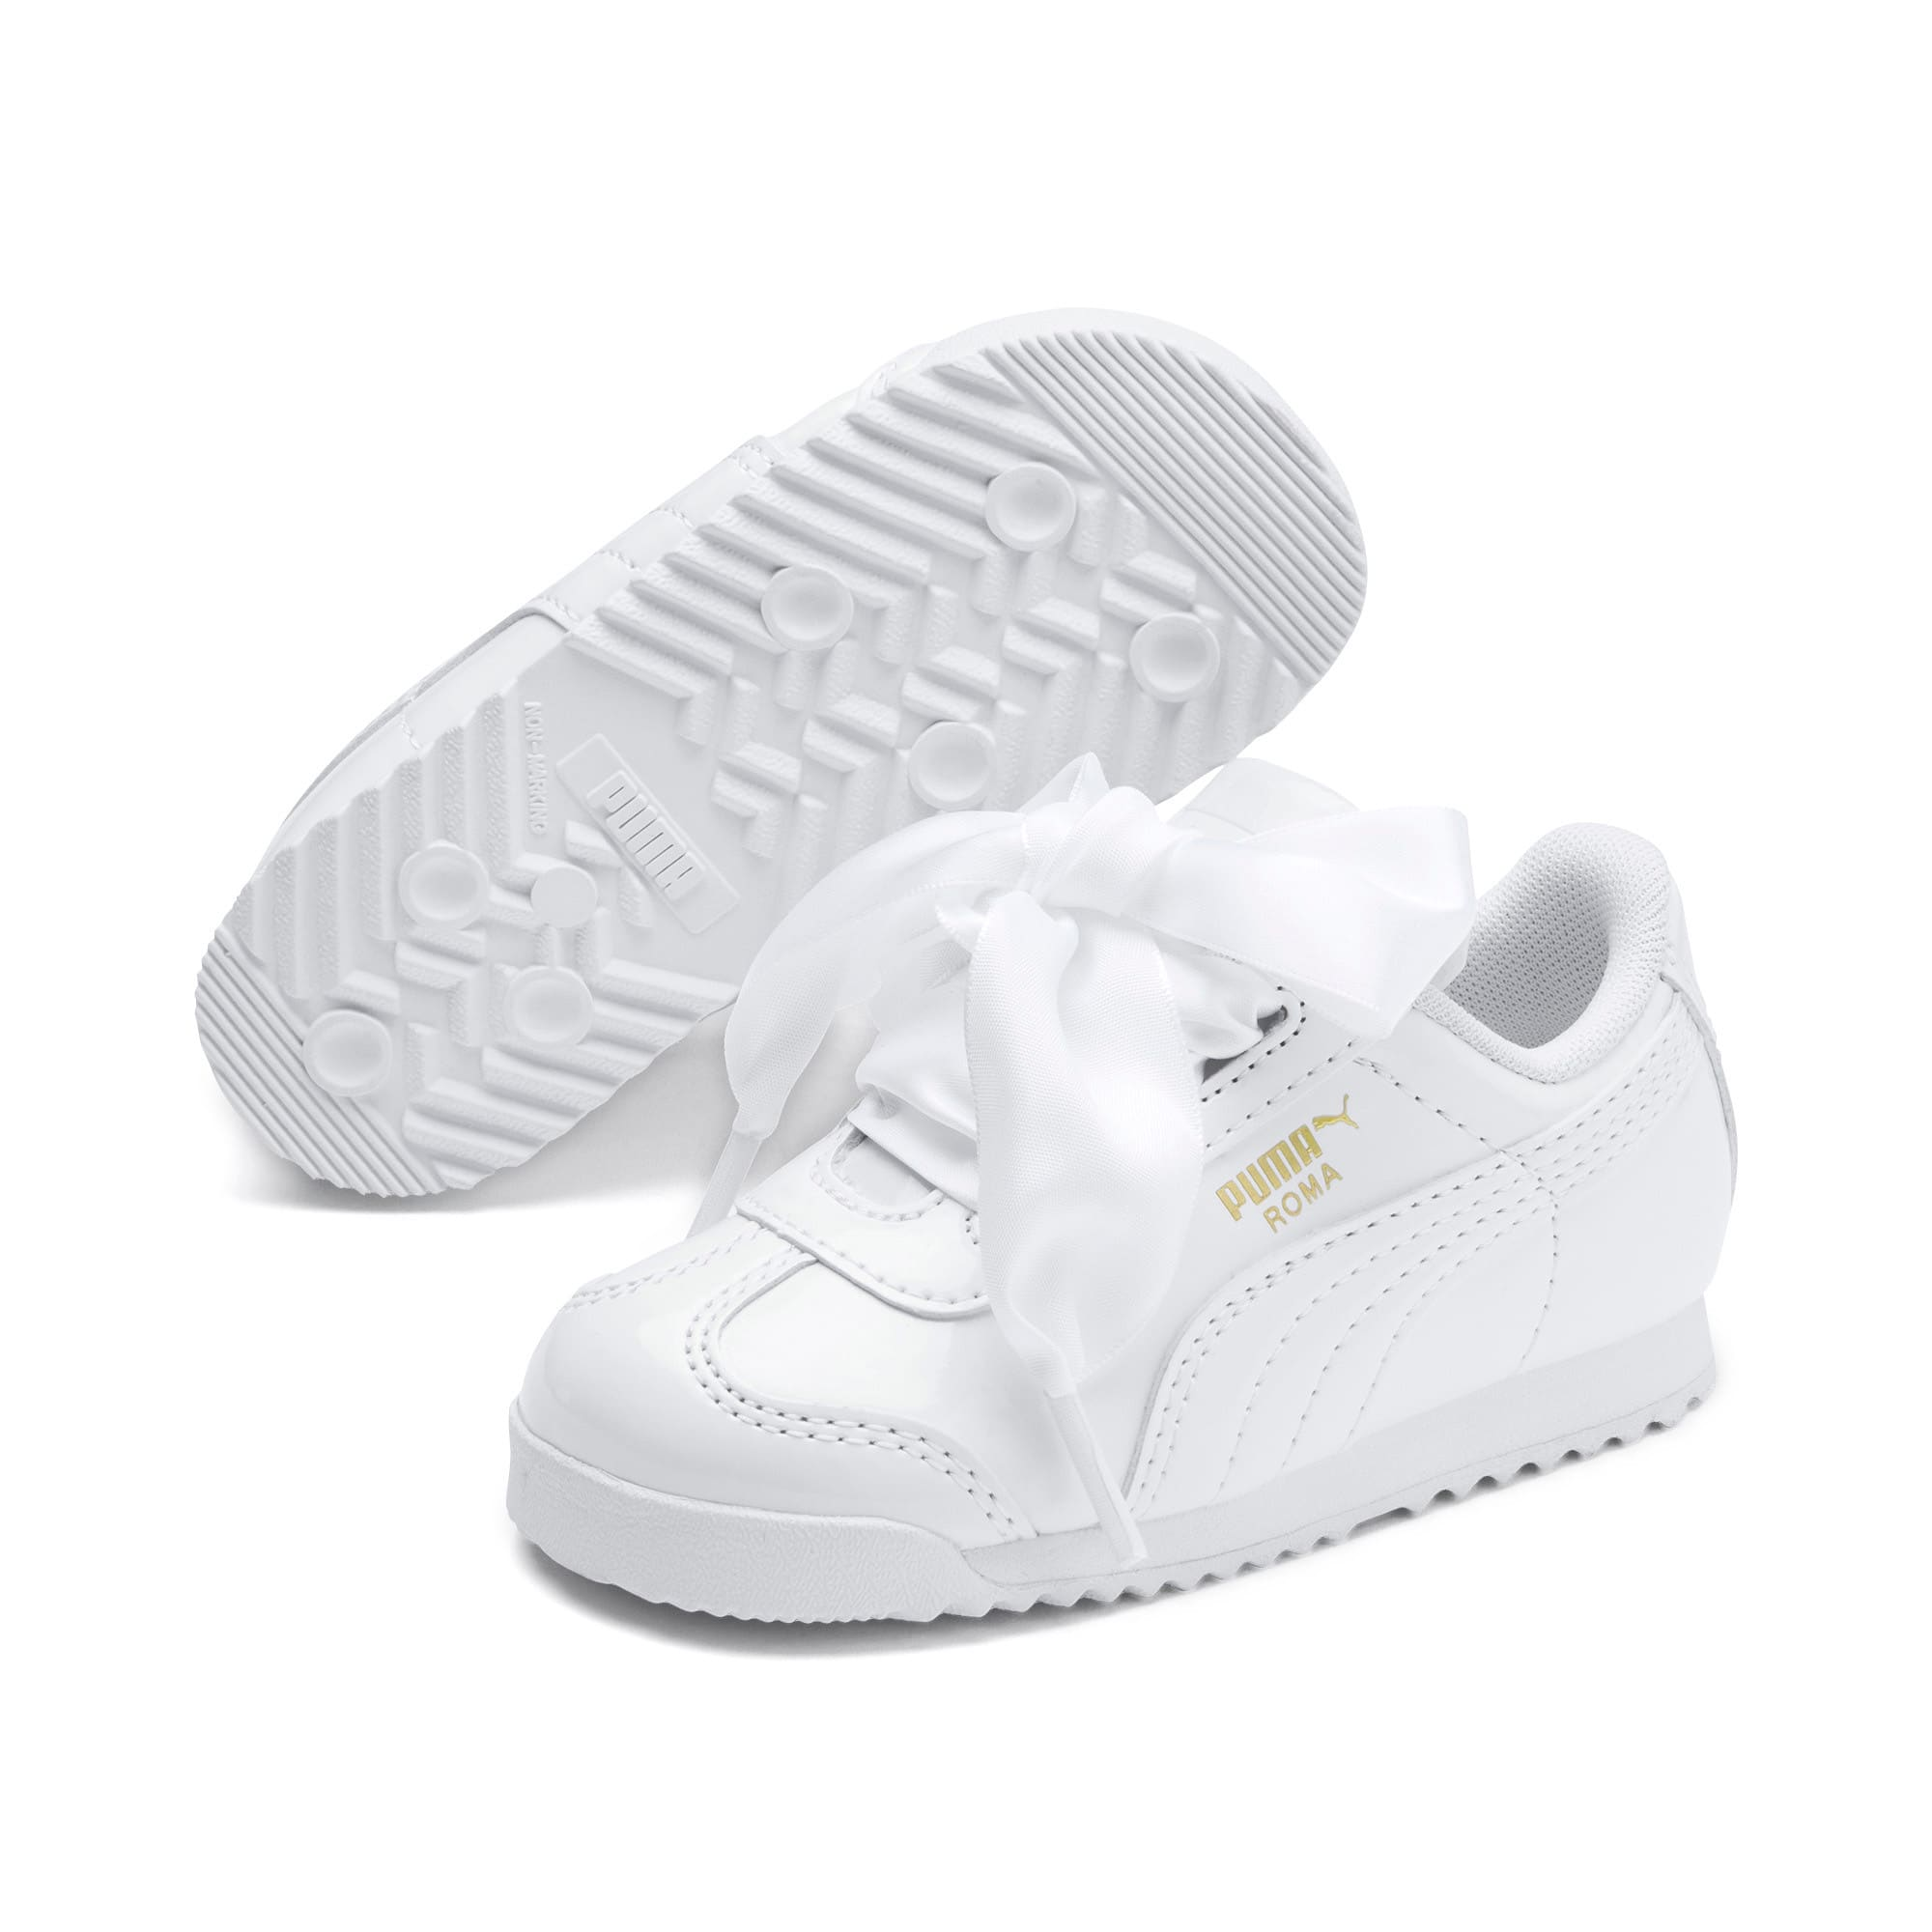 Thumbnail 2 of Roma Heart Patent Babies' Trainers, Puma White, medium